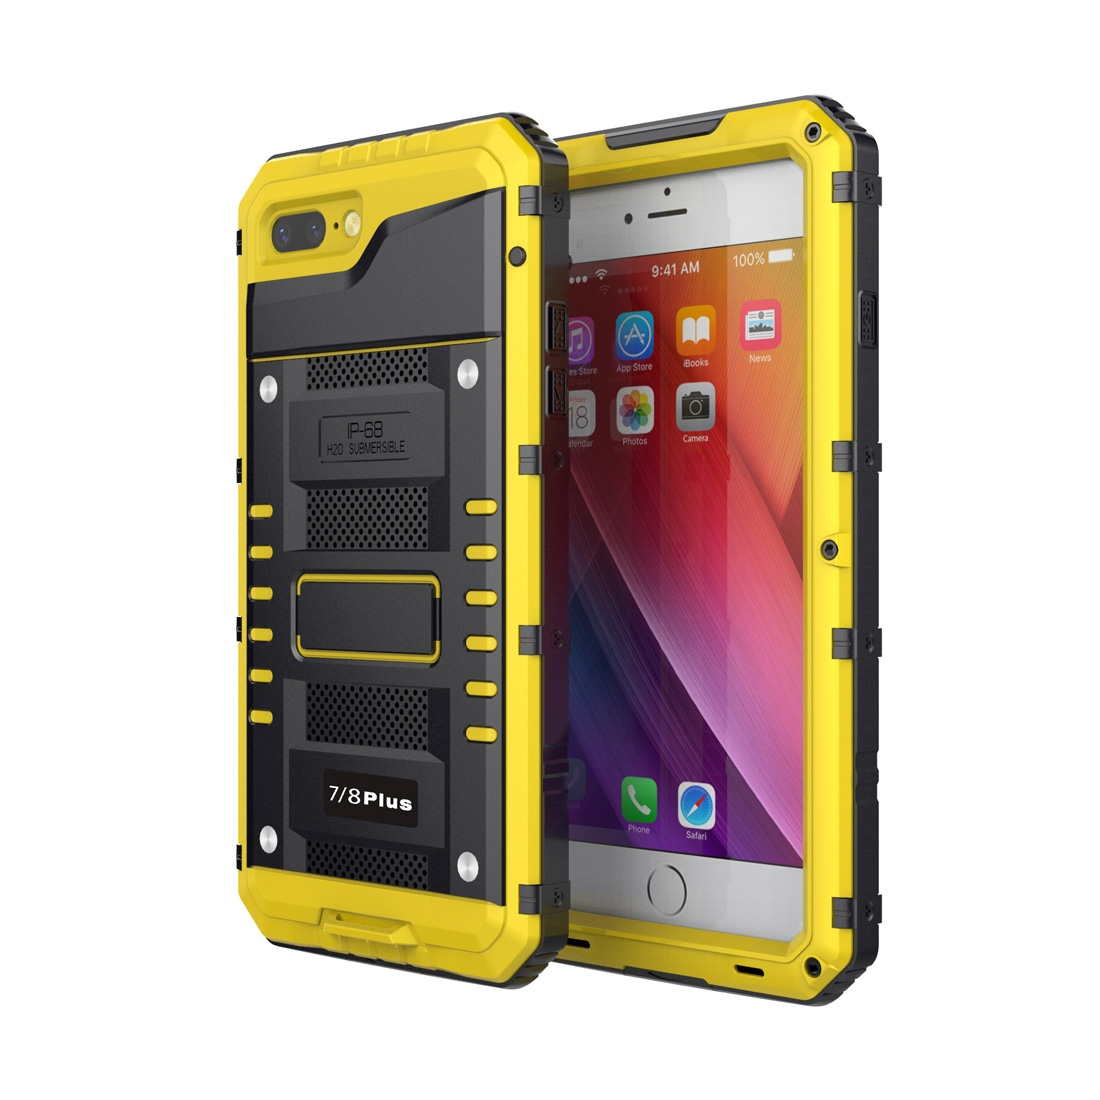 new styles 66990 8f288 Waterproof Dustproof Shockproof Zinc Alloy + Silicone Case for iPhone 8  Plus & 7 Plus (Yellow)